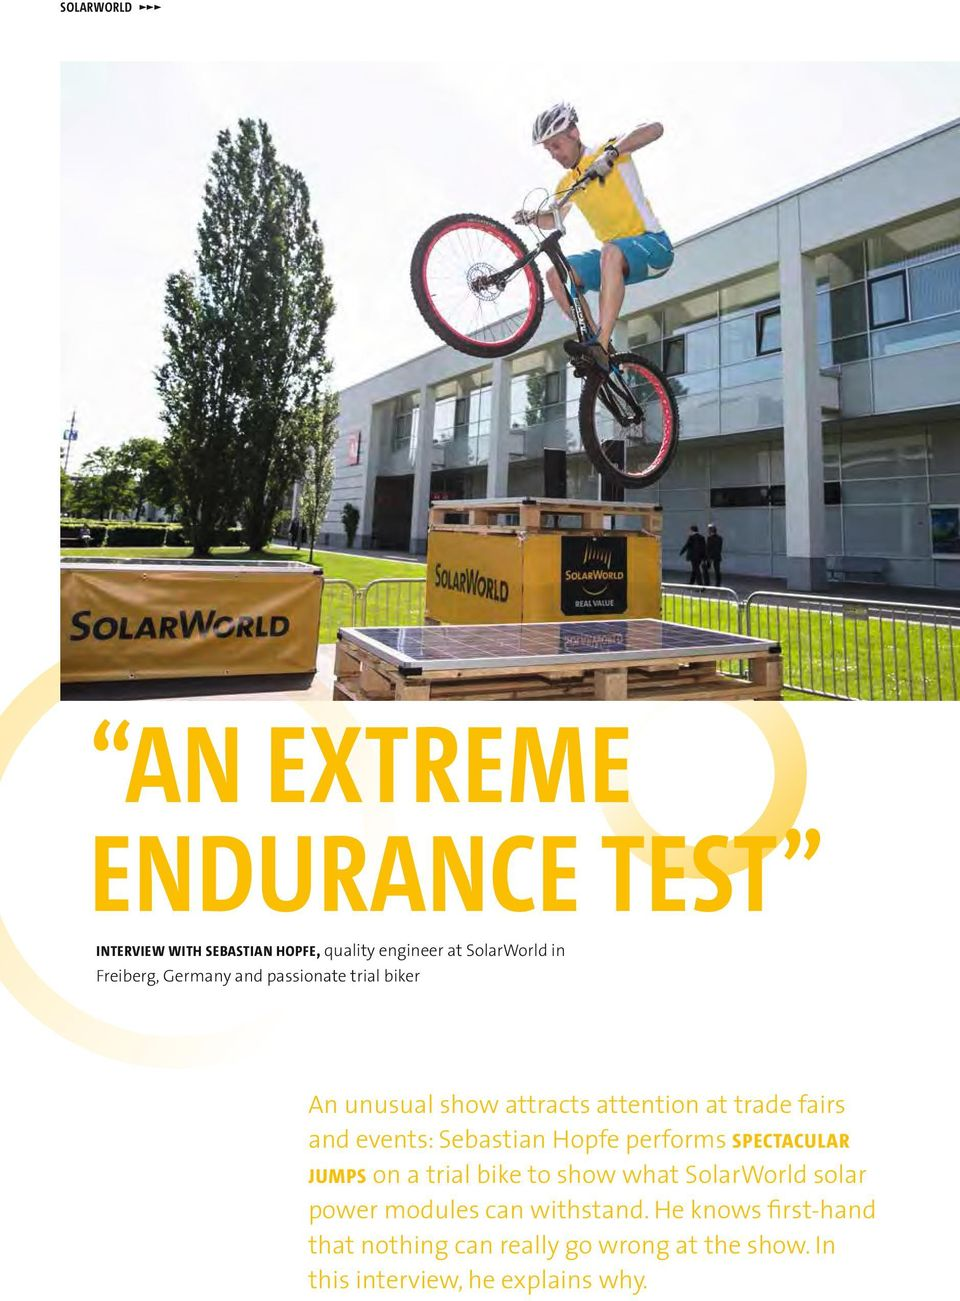 Sebastian Hopfe performs spectacular jumps on a trial bike to show what SolarWorld solar power modules can